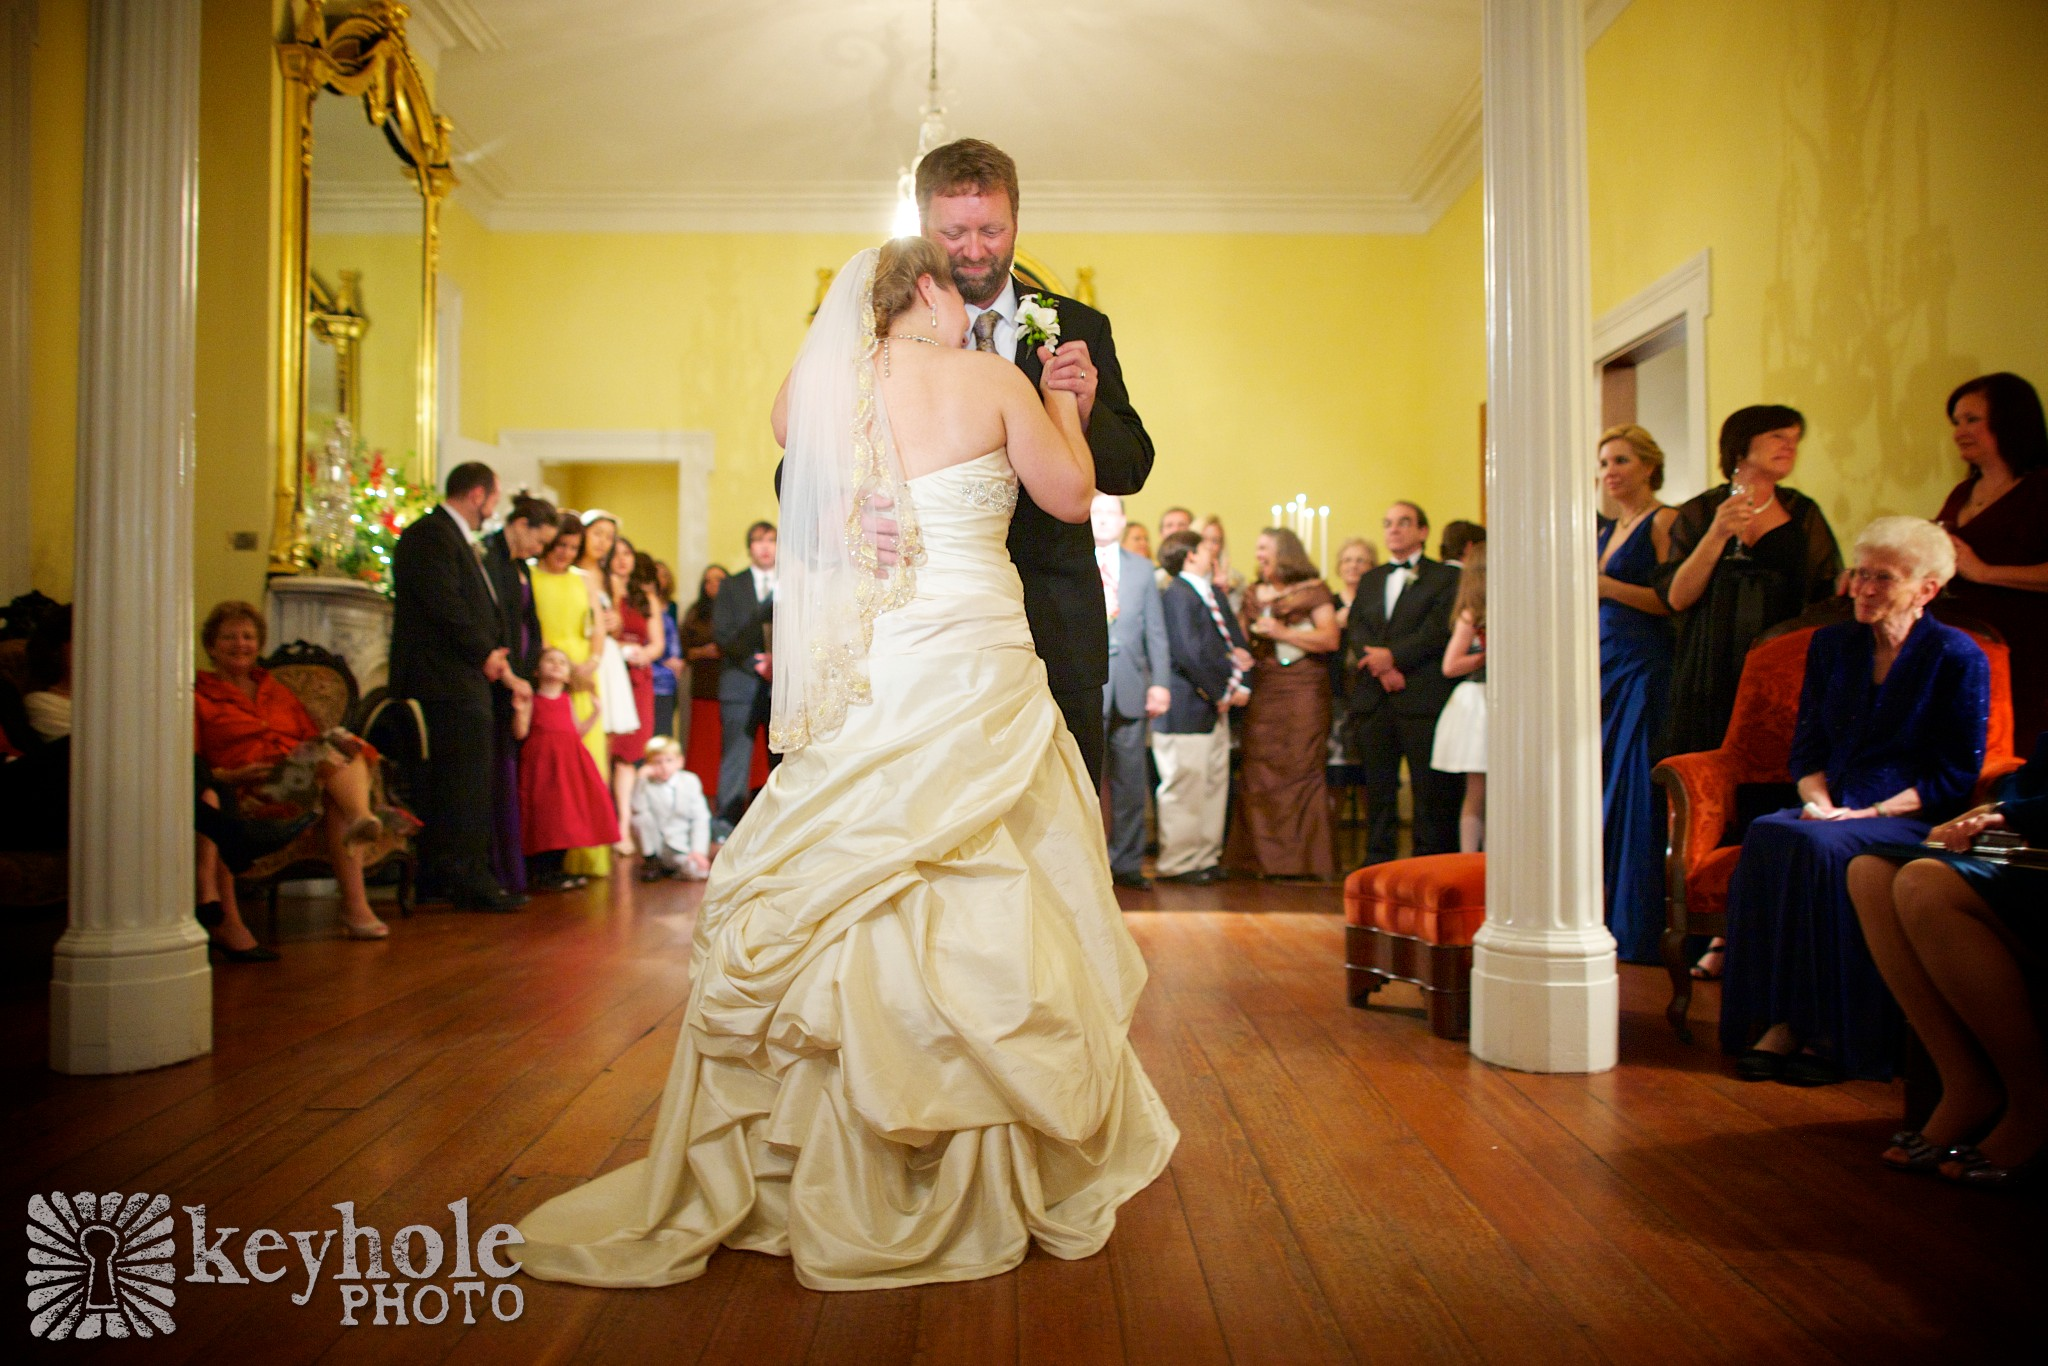 c&s_wedding_148754.jpg